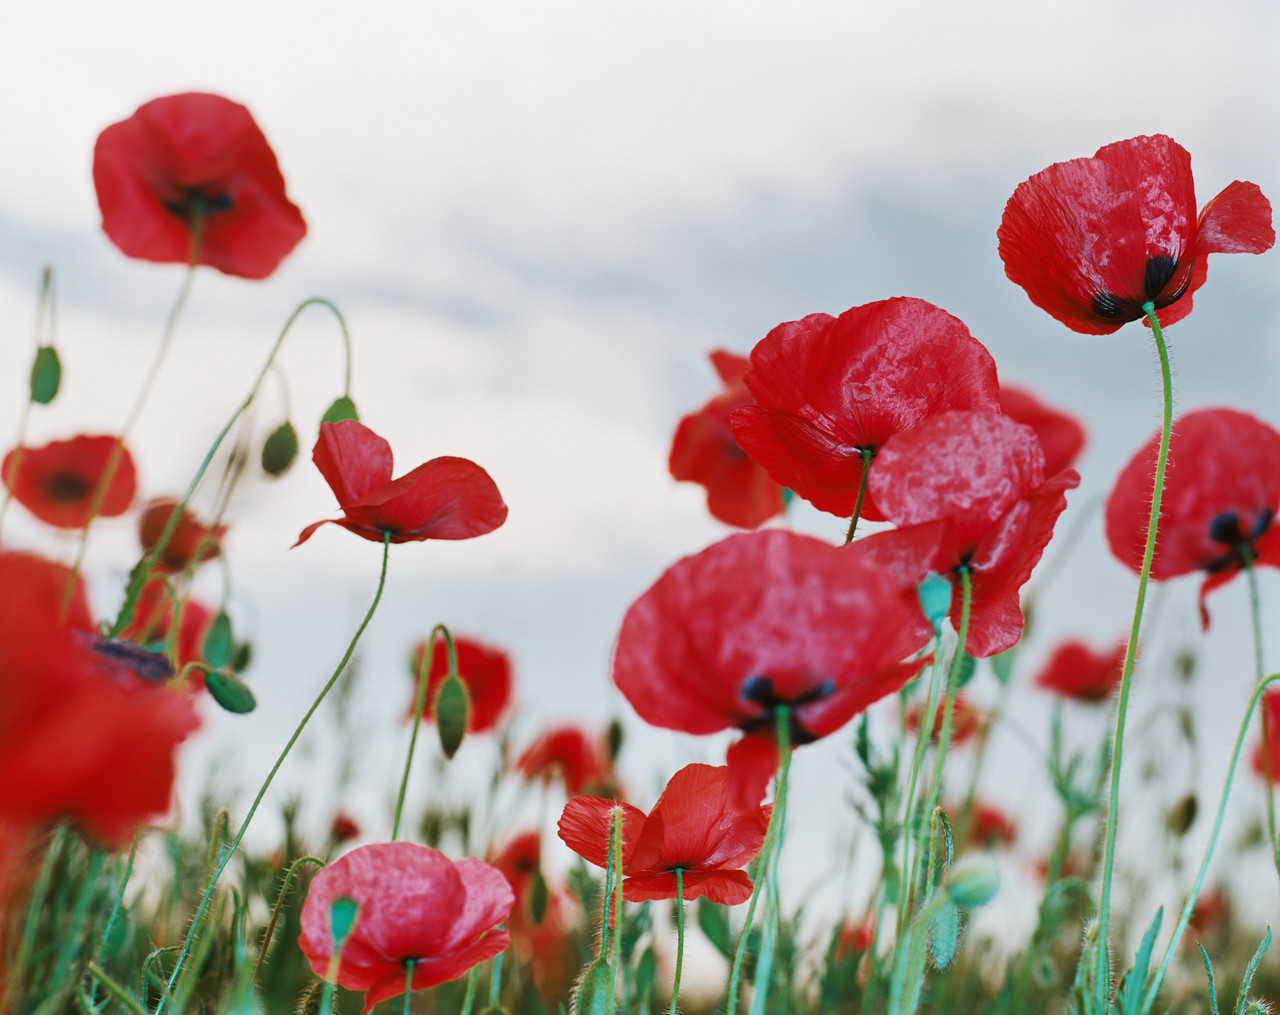 Remembrance day poems amotherworld remembrance day poems mightylinksfo